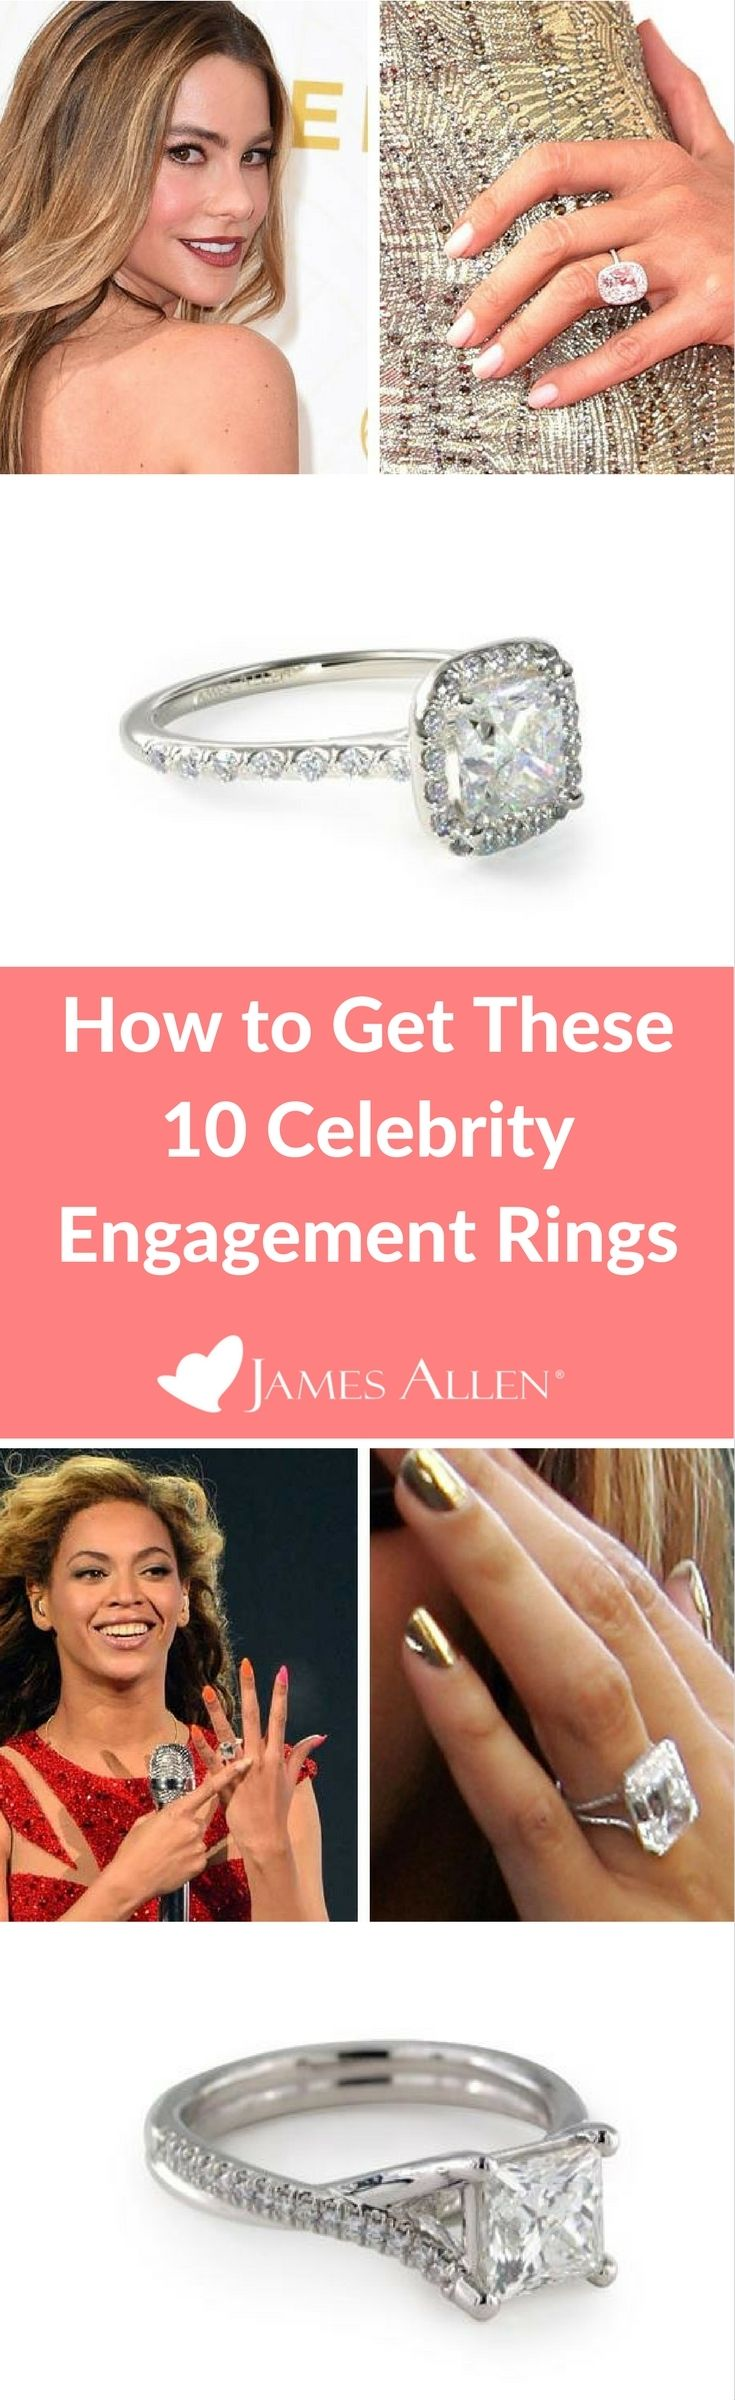 How to get these 10 Celebrity Engagement Rings | From Beyonce's engagement ring, to Bar Refaeli, Sofia Vergara, and Kate Middleton, here is how to get a celebrity engagement ring that is within your budget.